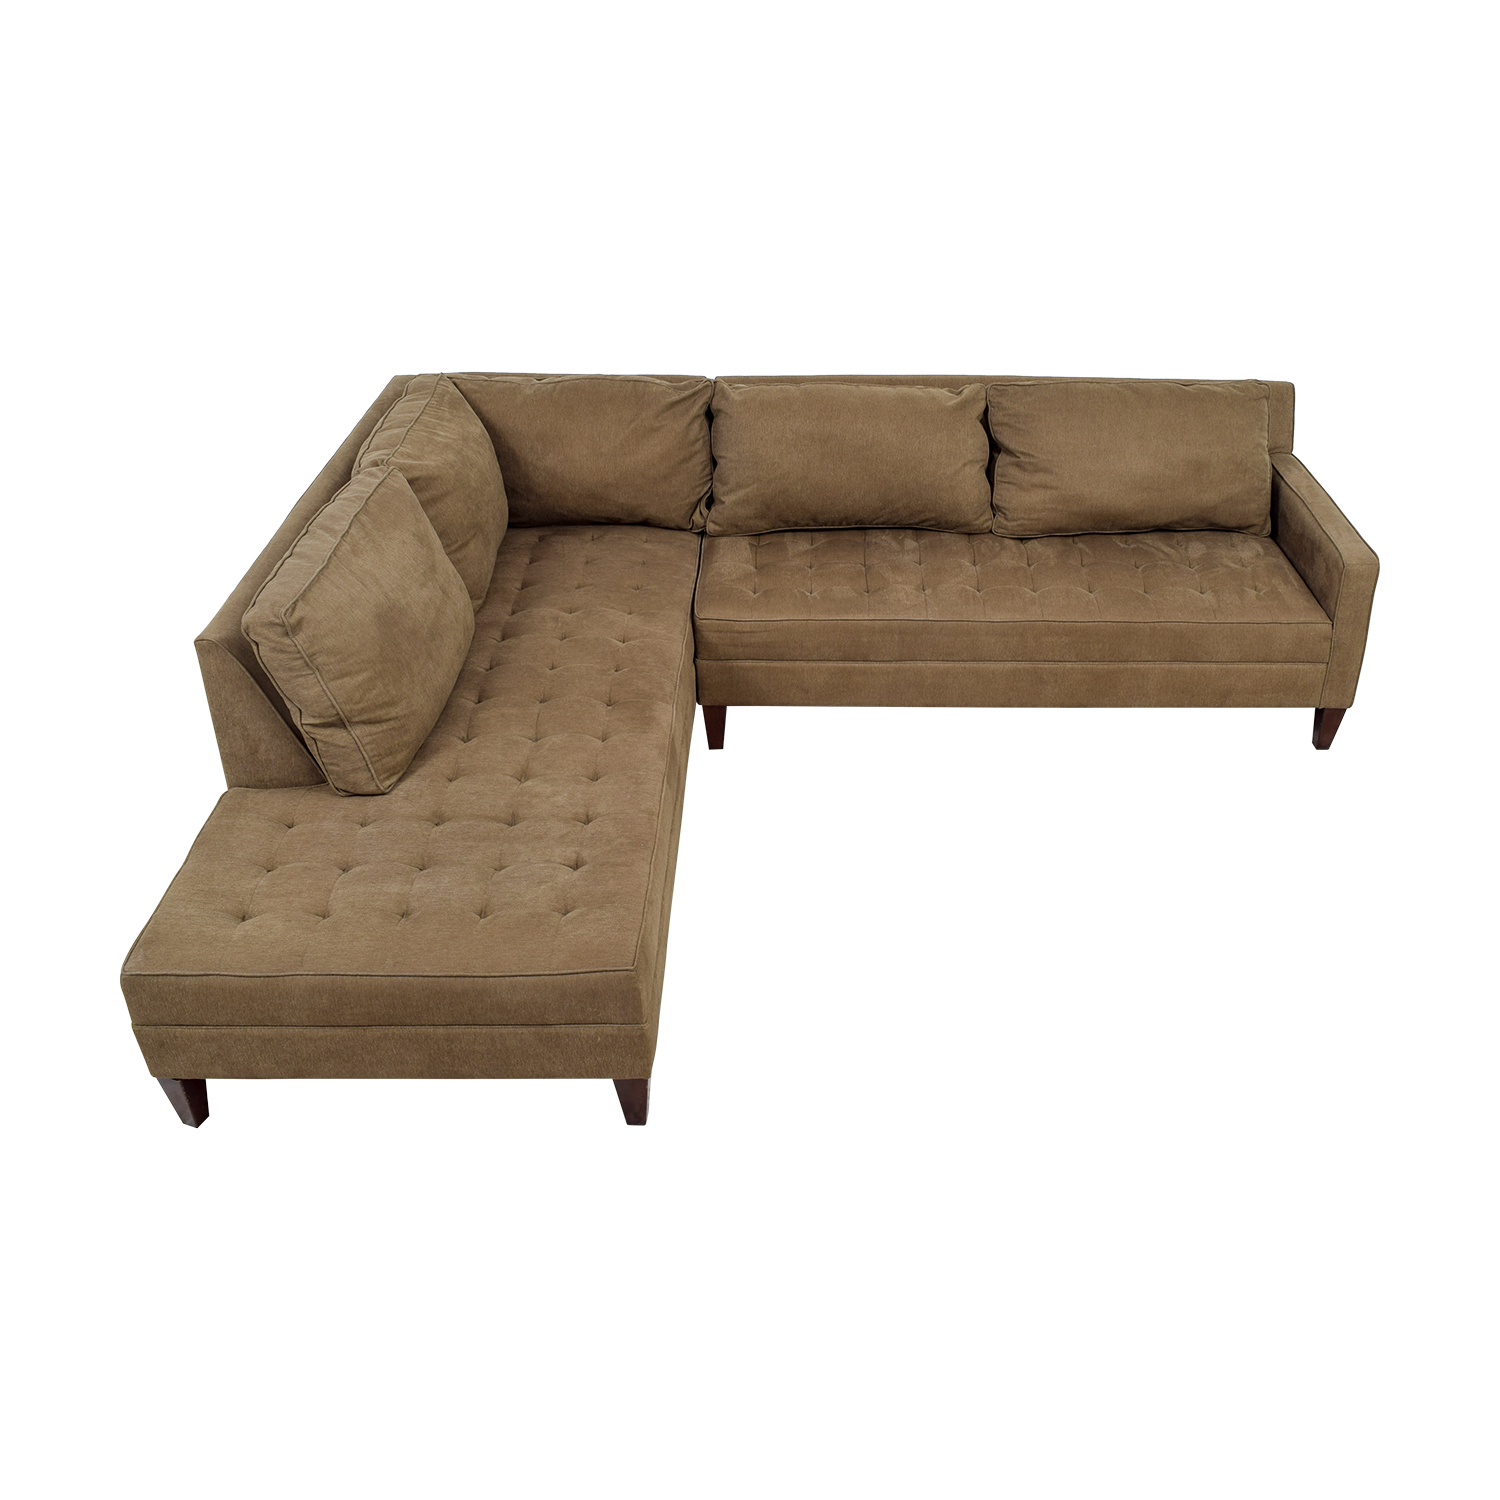 shop Z Gallery Z Gallery Brown Tufted Chaise L-Shaped Sectional online